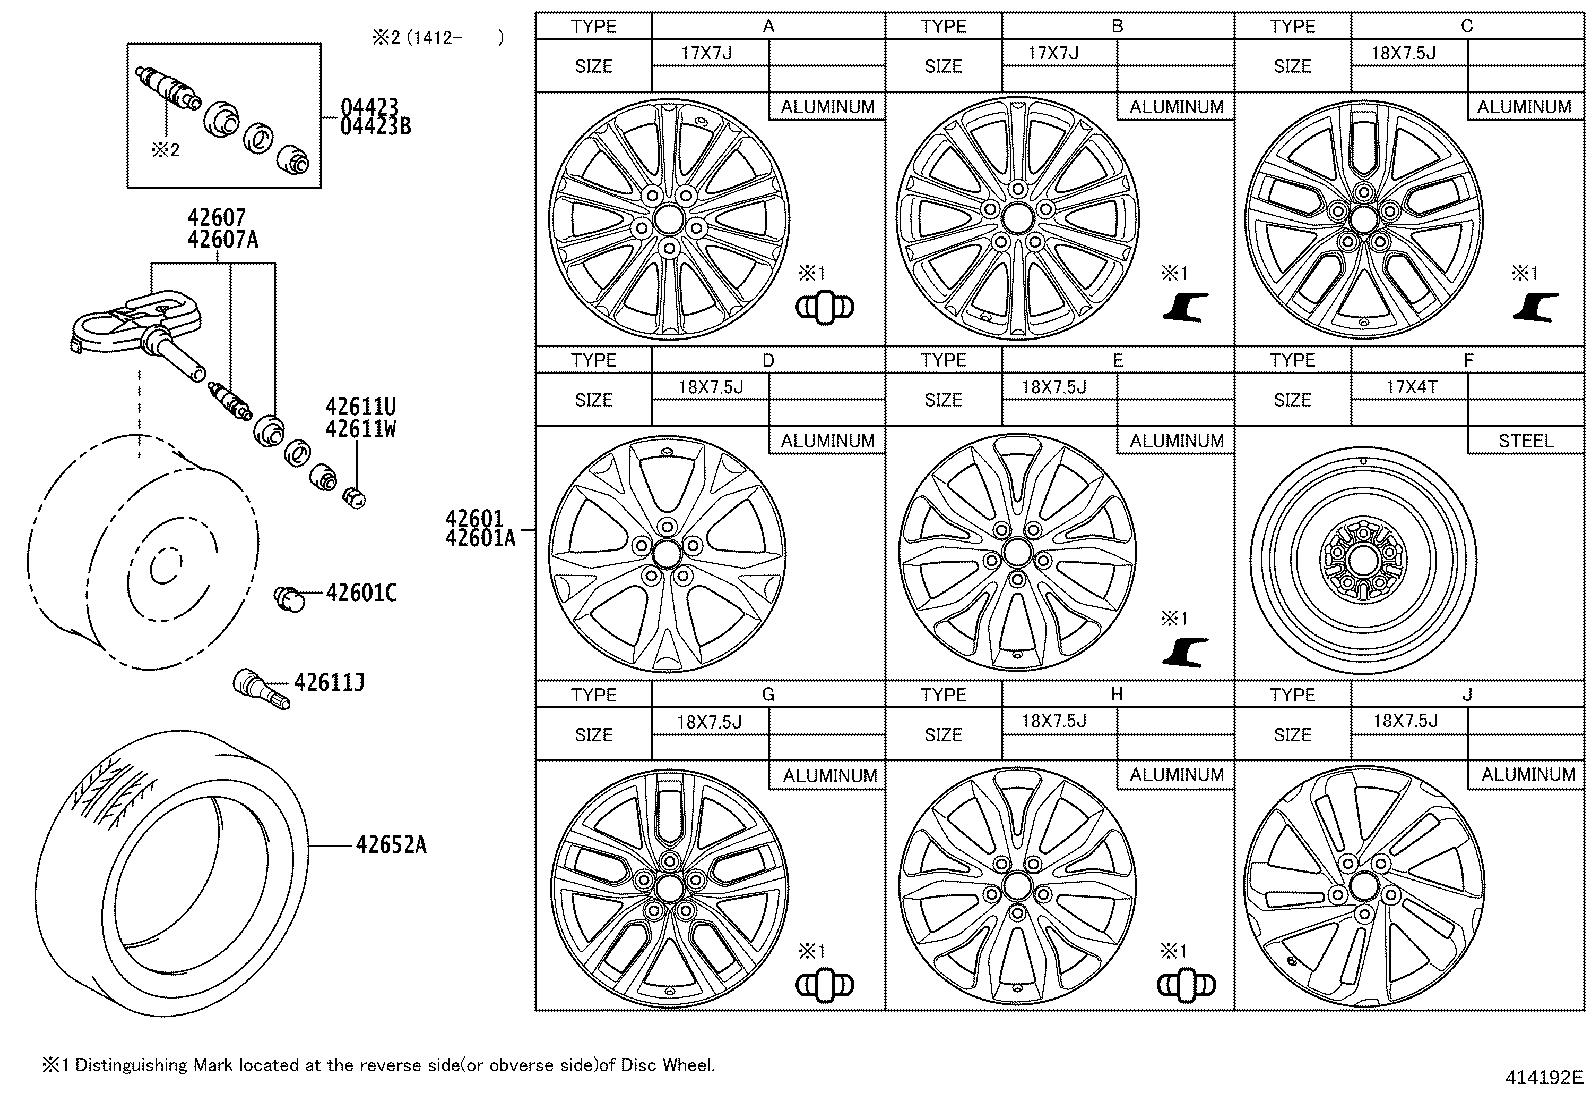 Diagram DISC WHEEL & WHEEL CAP for your Lexus NX 200t